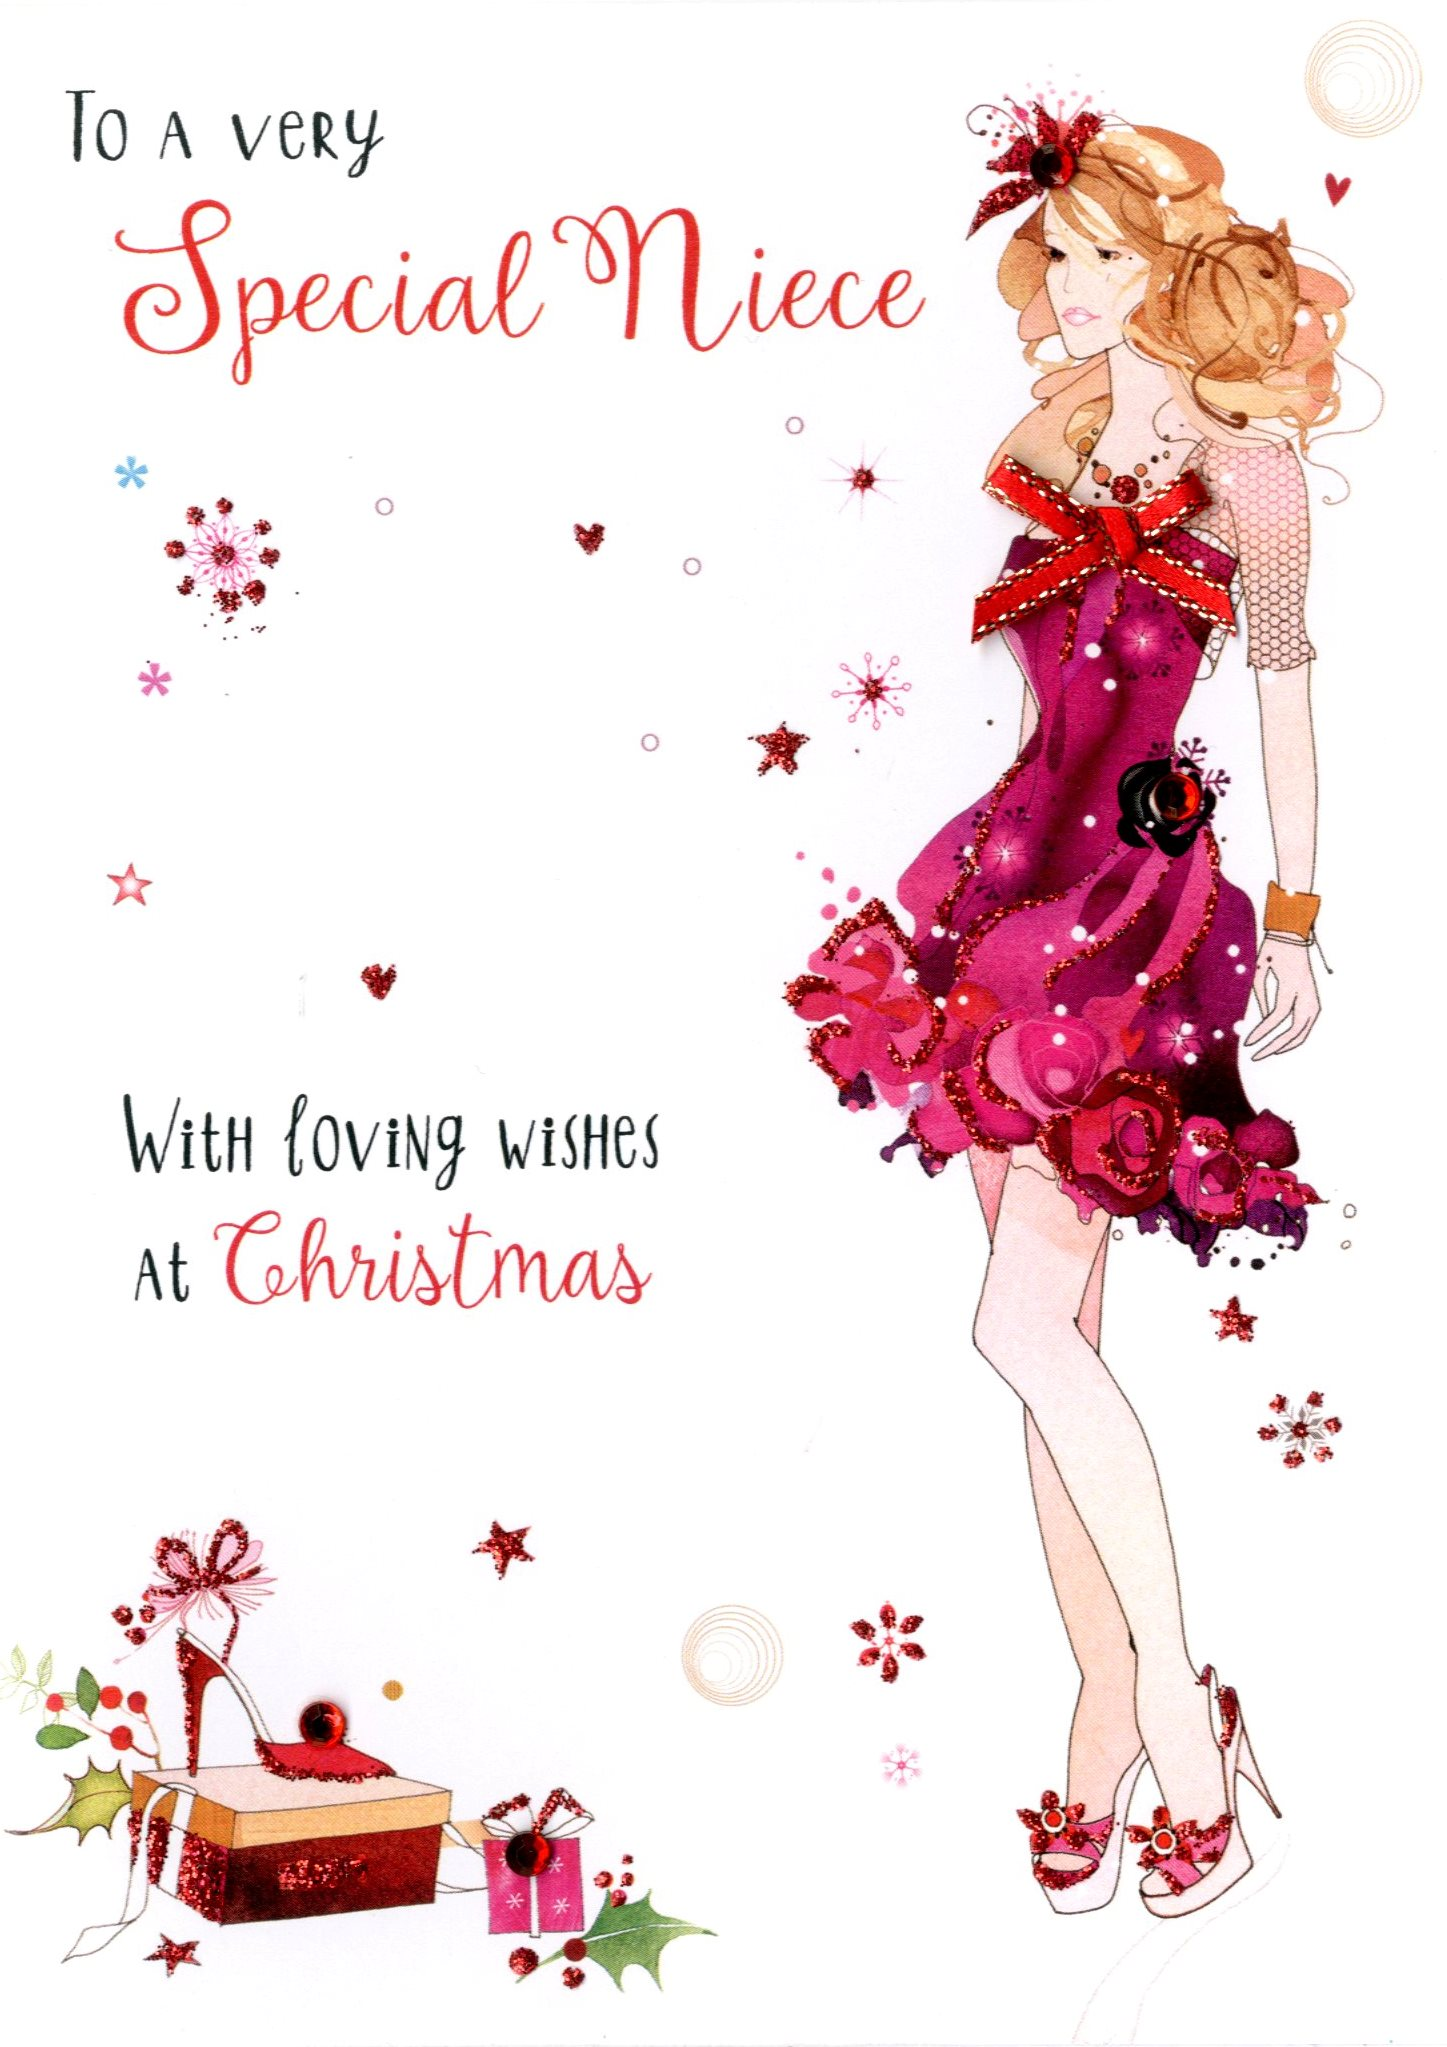 Special Niece Embellished Christmas Card Hand Finished Bonne Fete